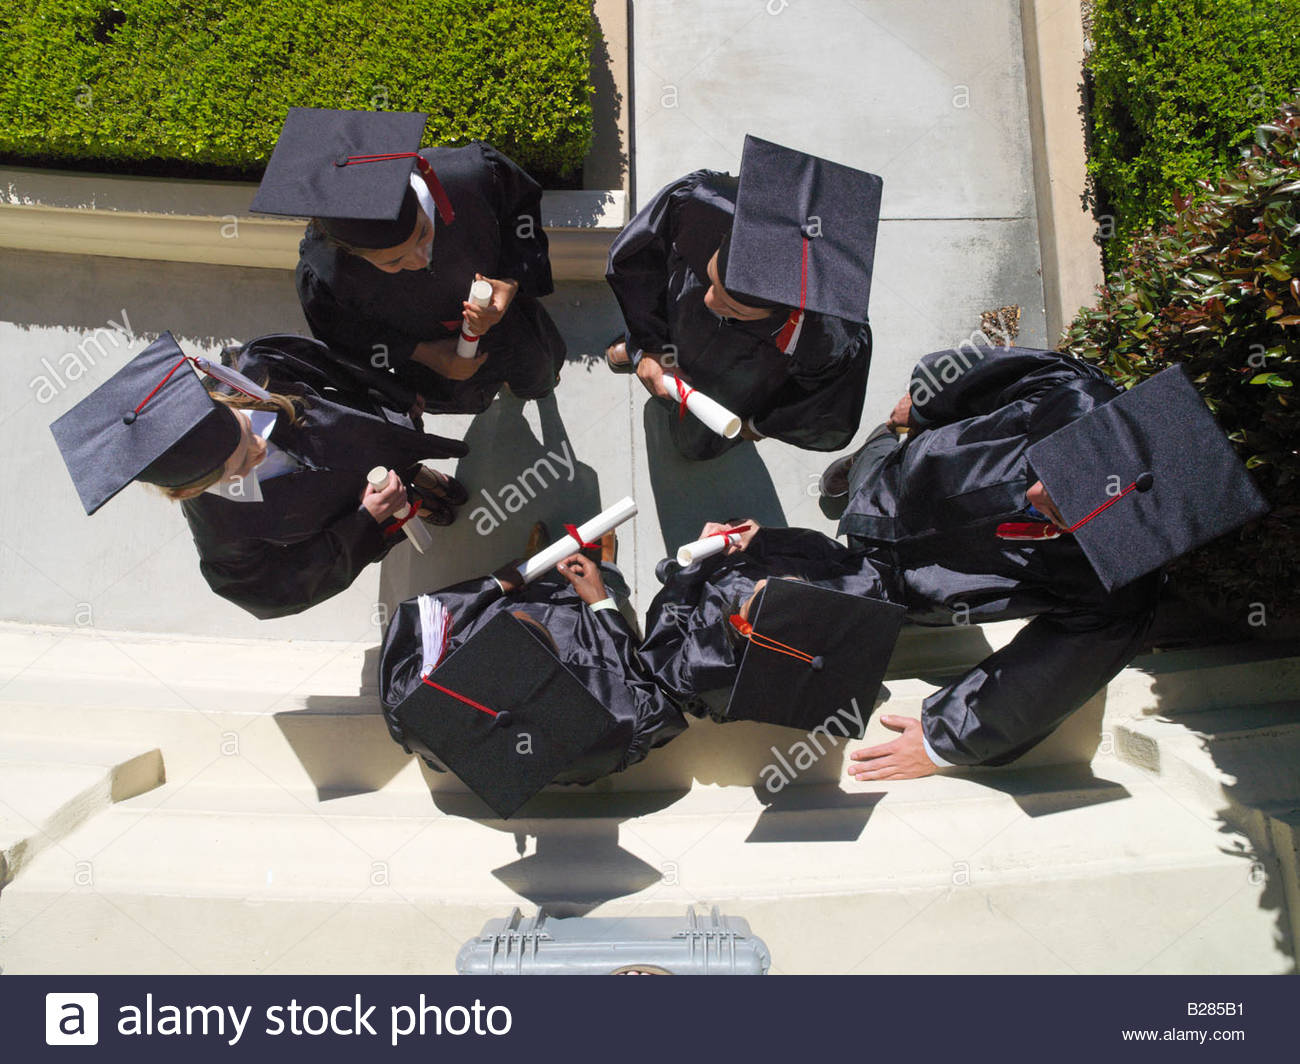 Graduates in caps and gowns, elevated view - Stock Image